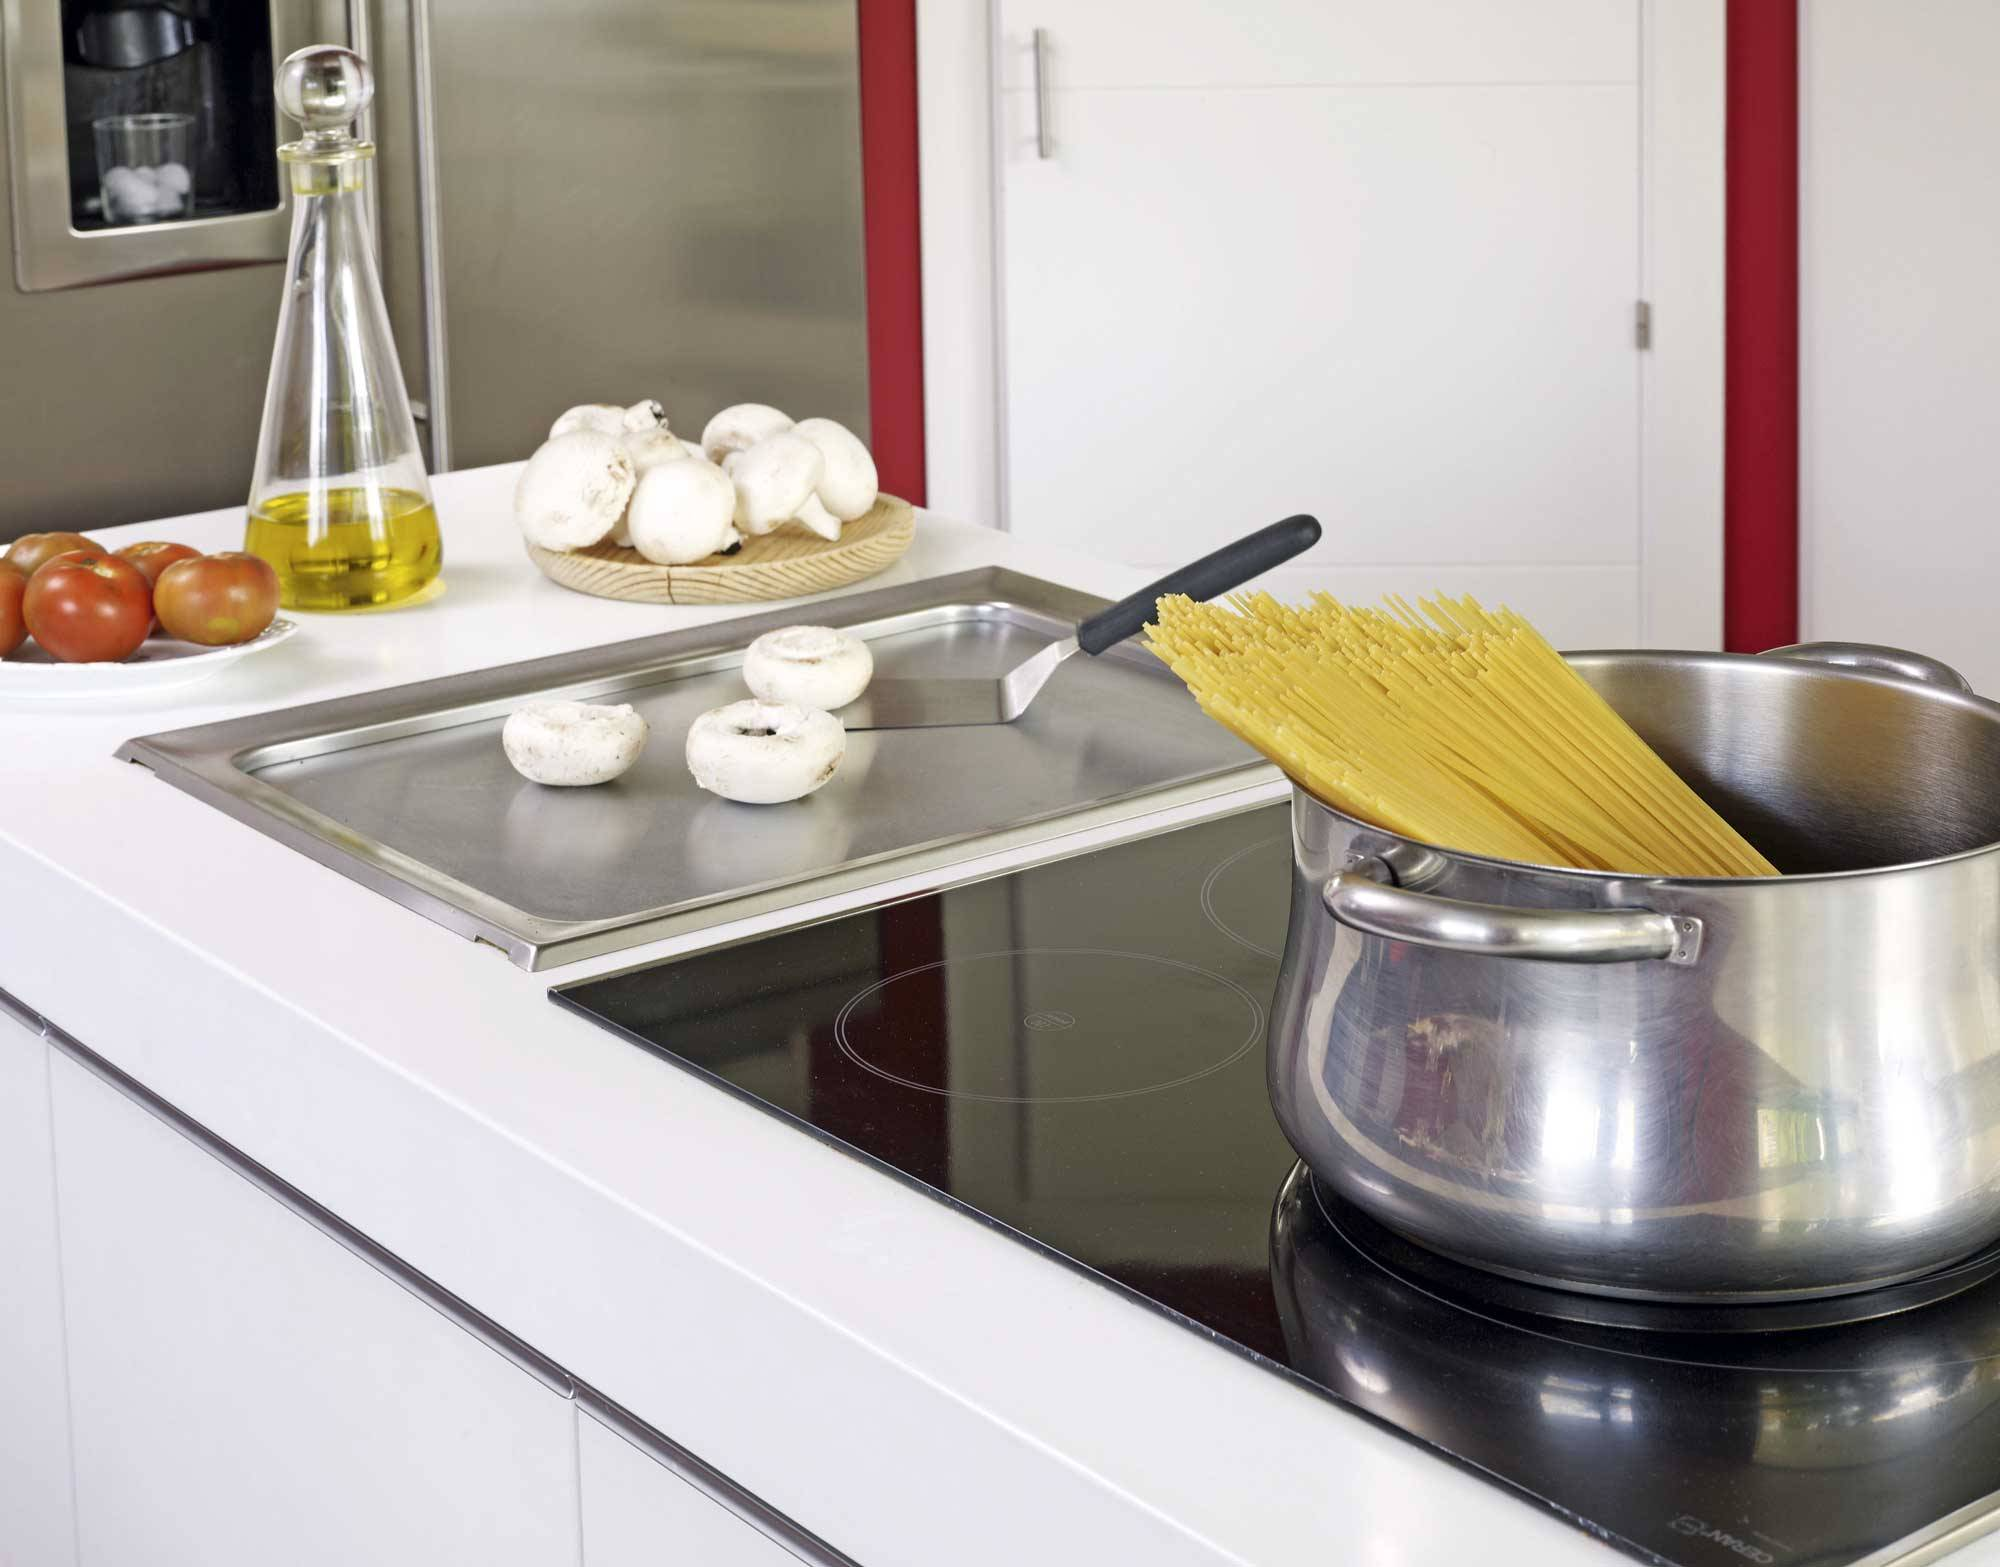 how to clean a ceramic hob 4. Ice to remove stains